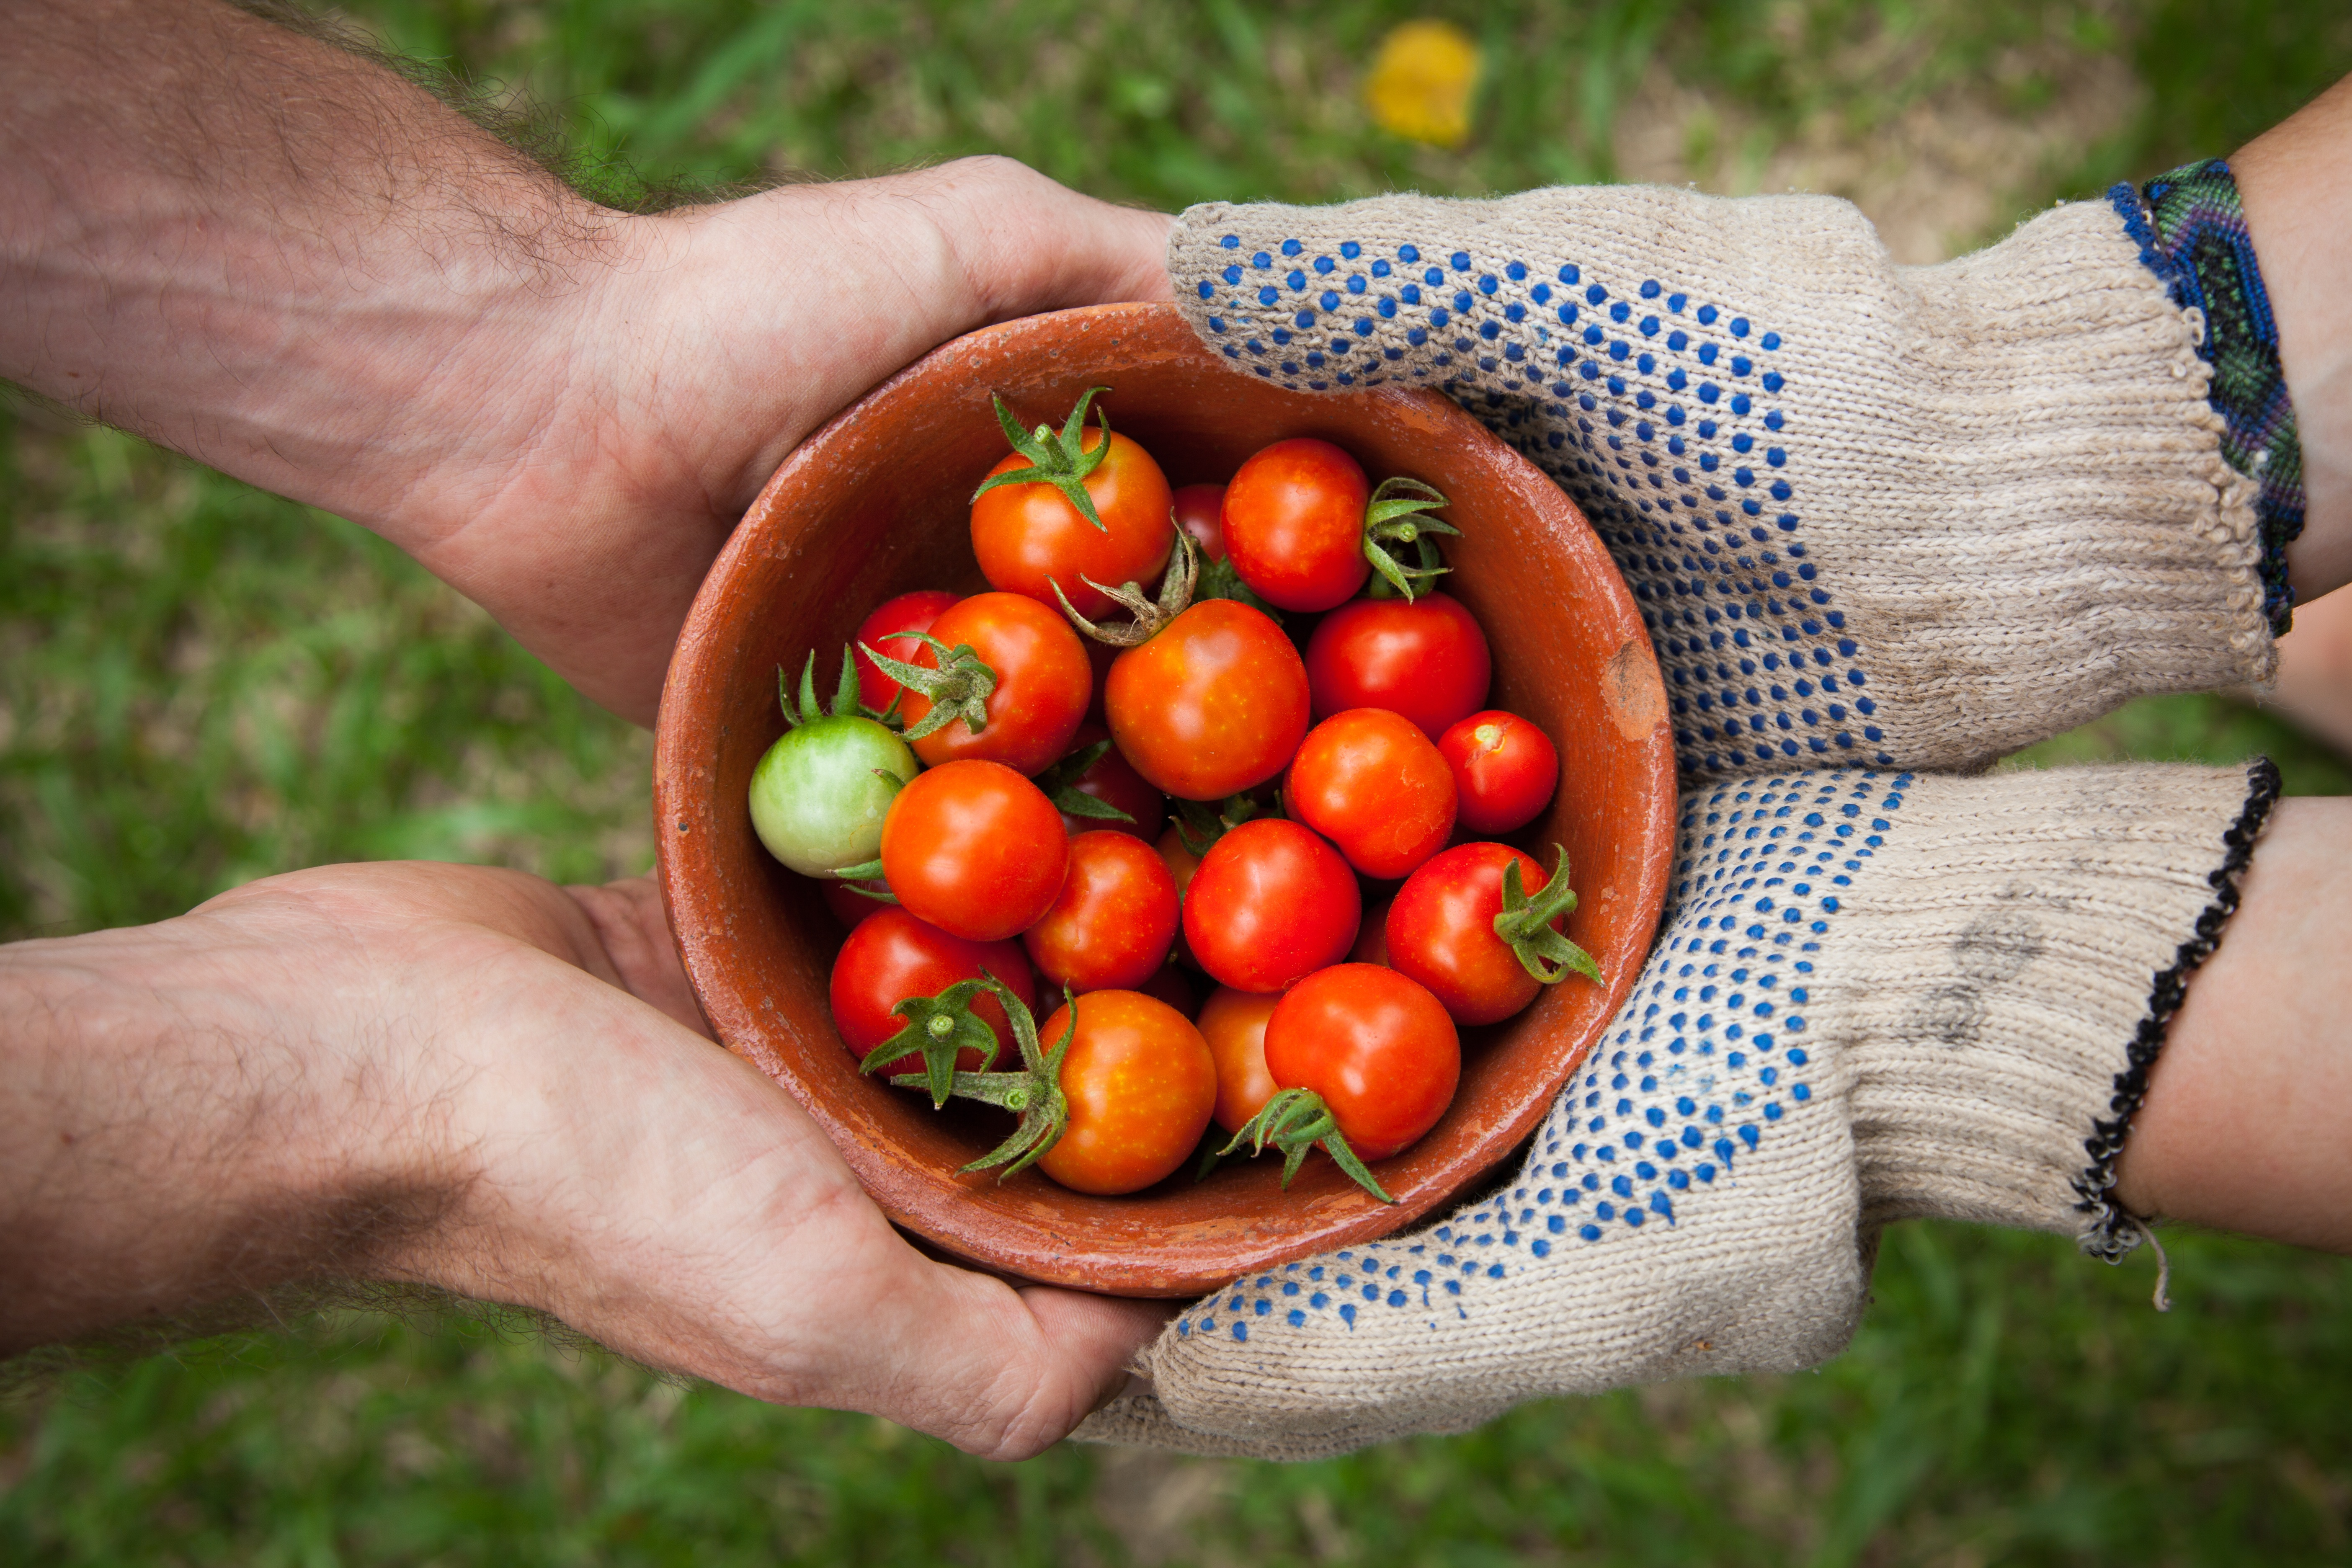 sharing-tomatoes_importance-of-being-involved_elaine-casap